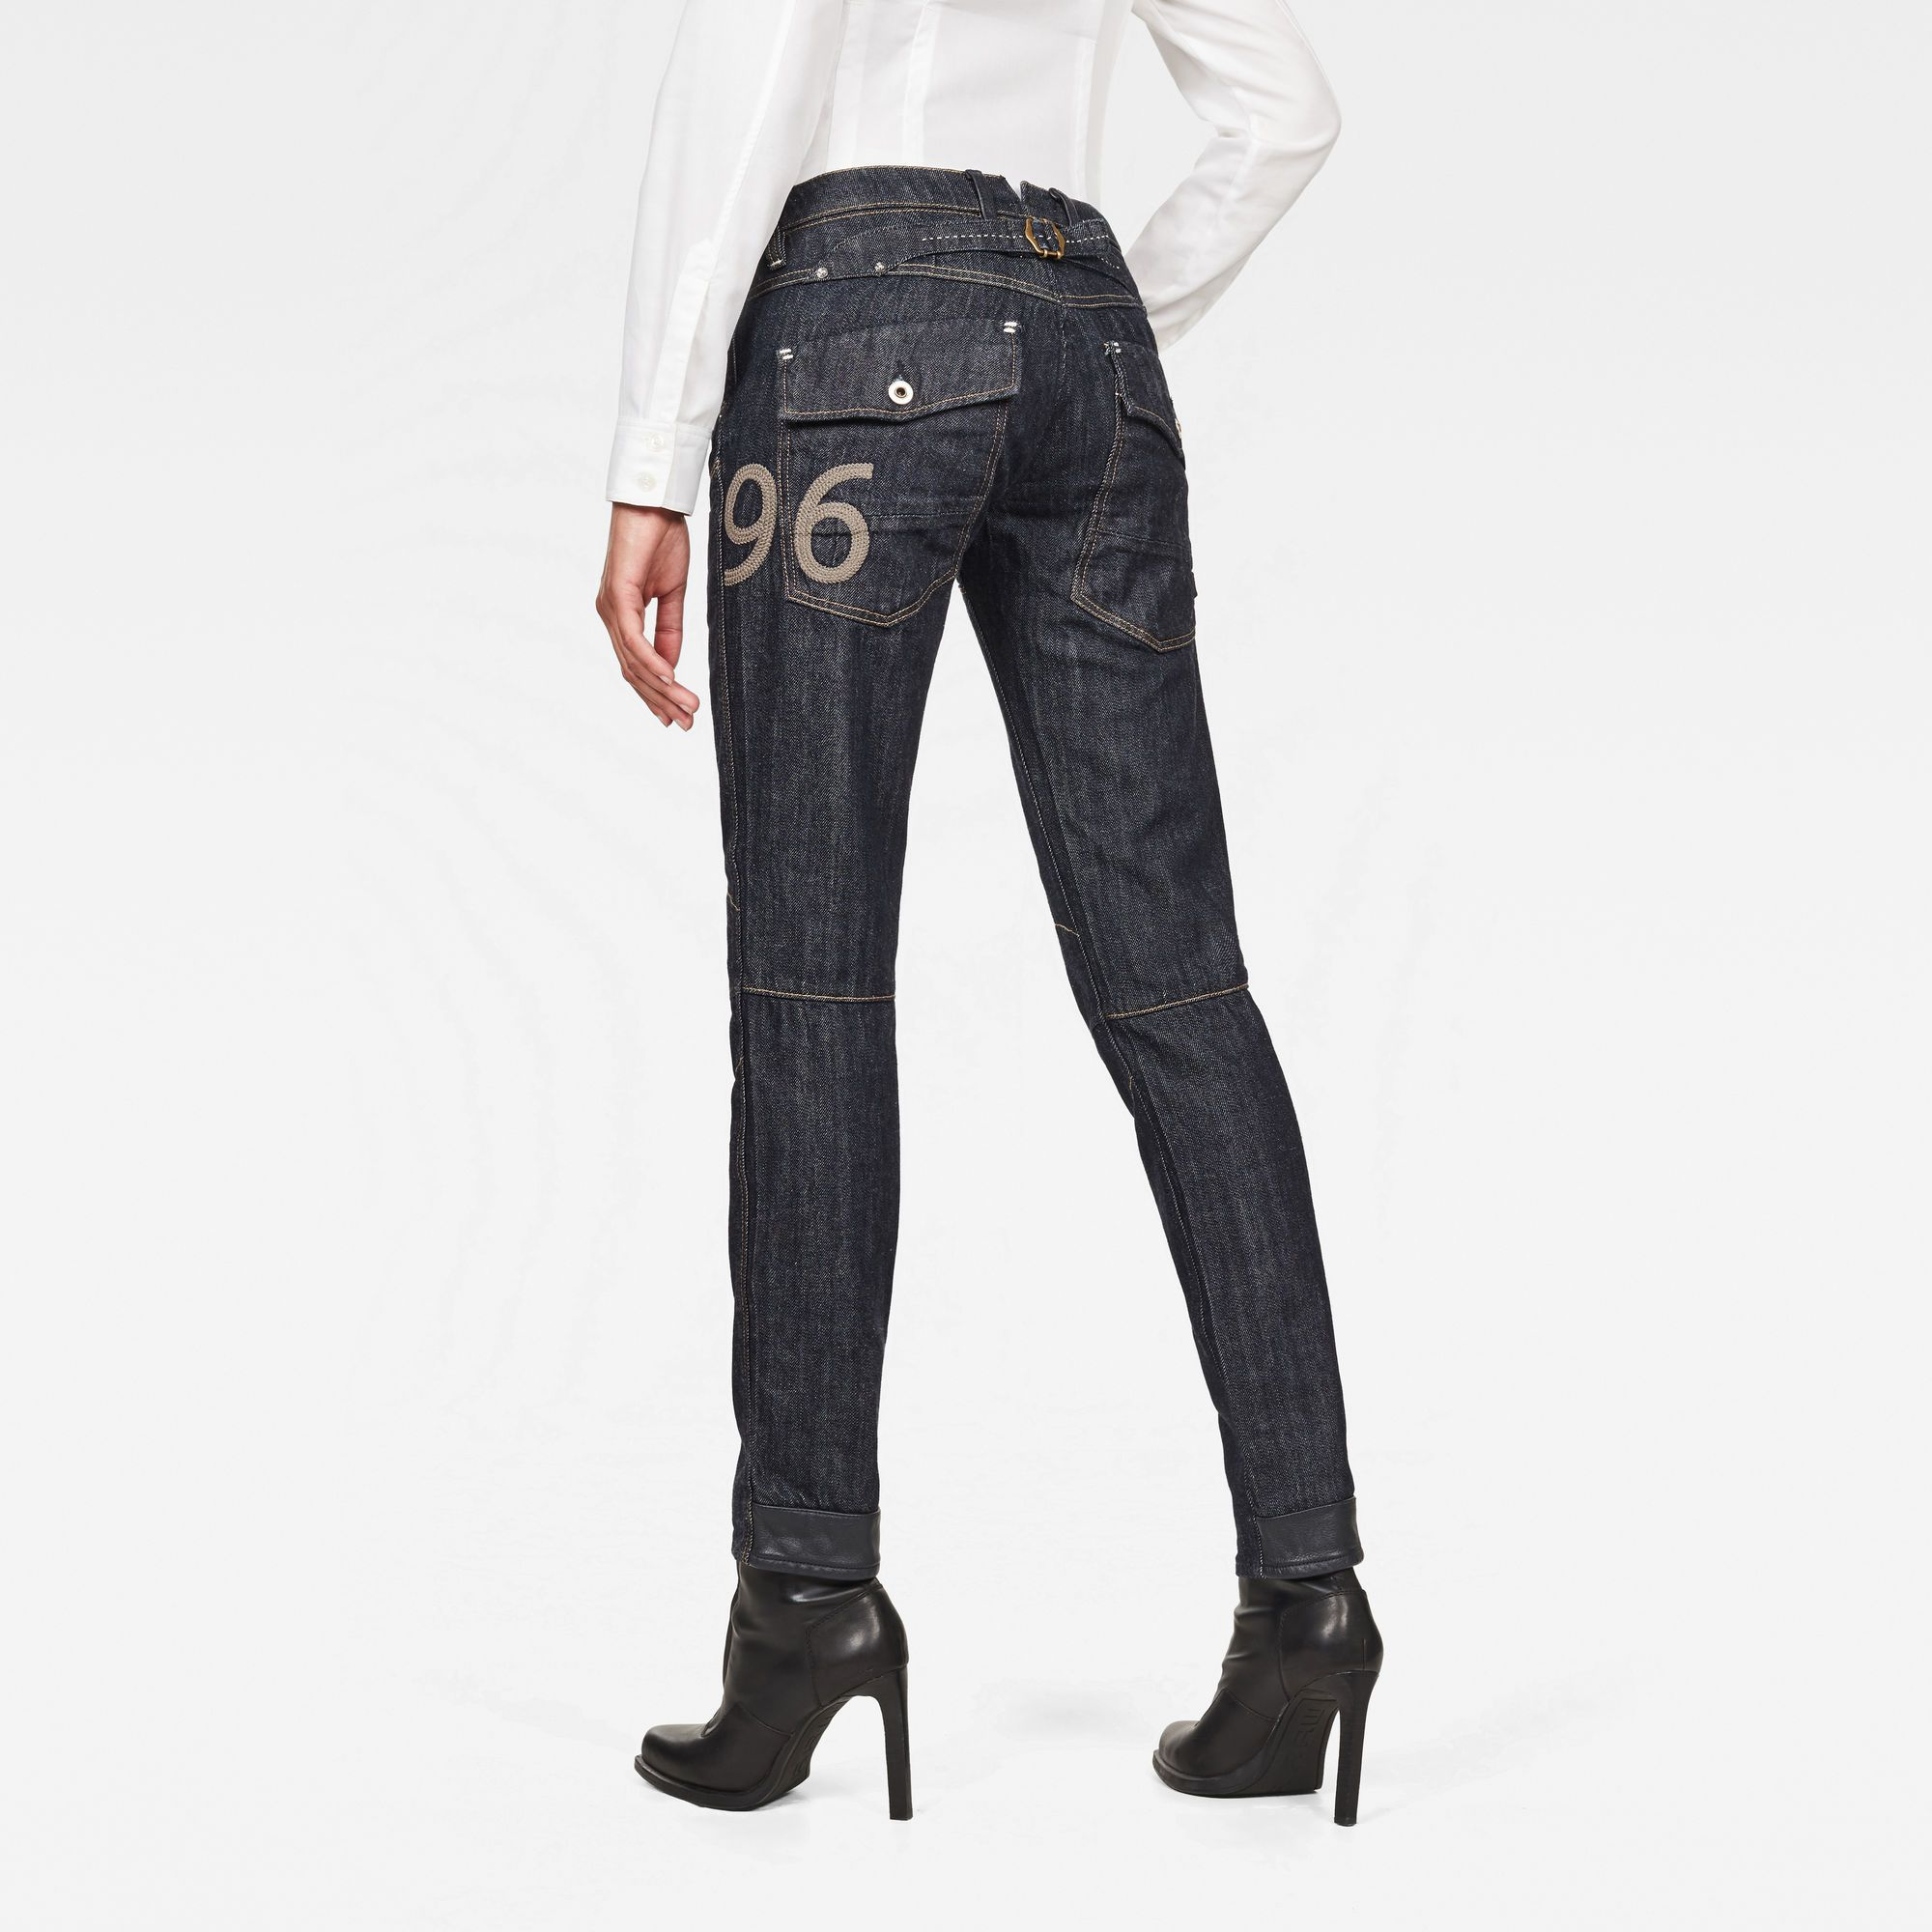 G-Star RAW 30 Years 5620 Heritage Tapered Jeans